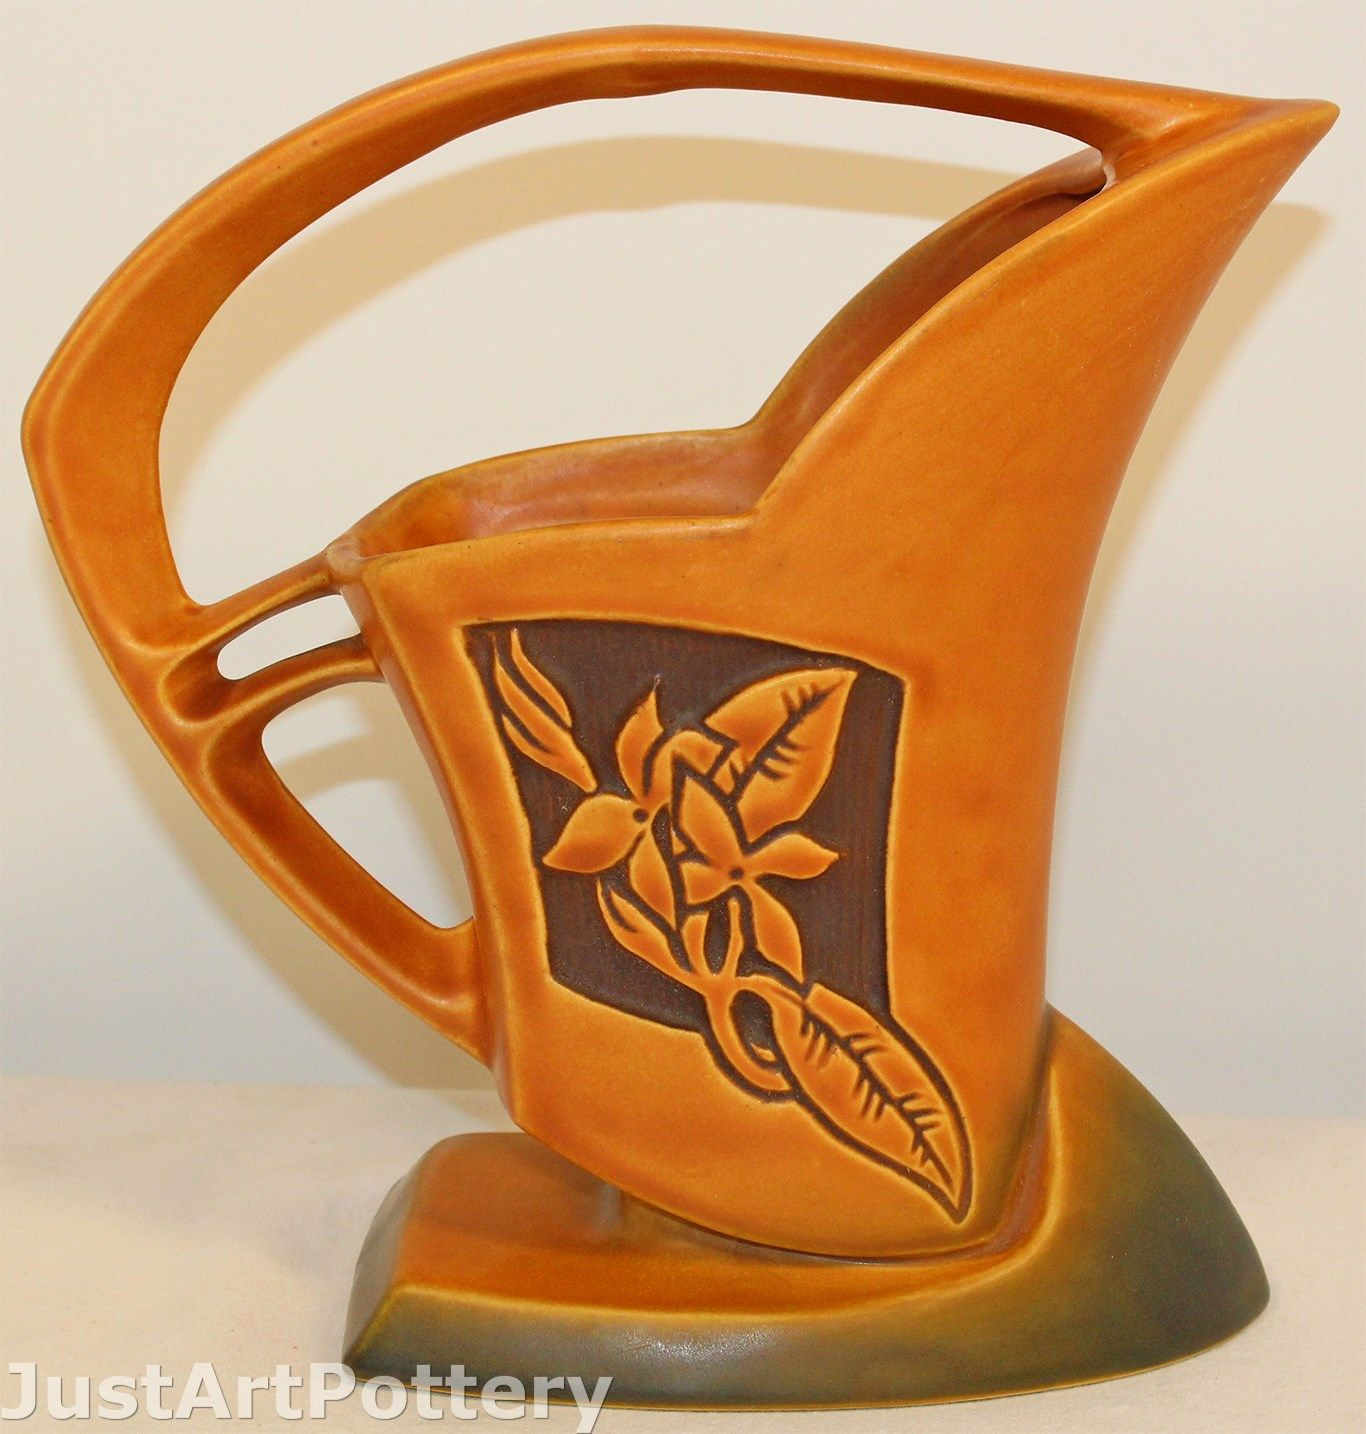 Roseville Pottery Silhouette Russet Basket 709-8 from Just Art Pottery